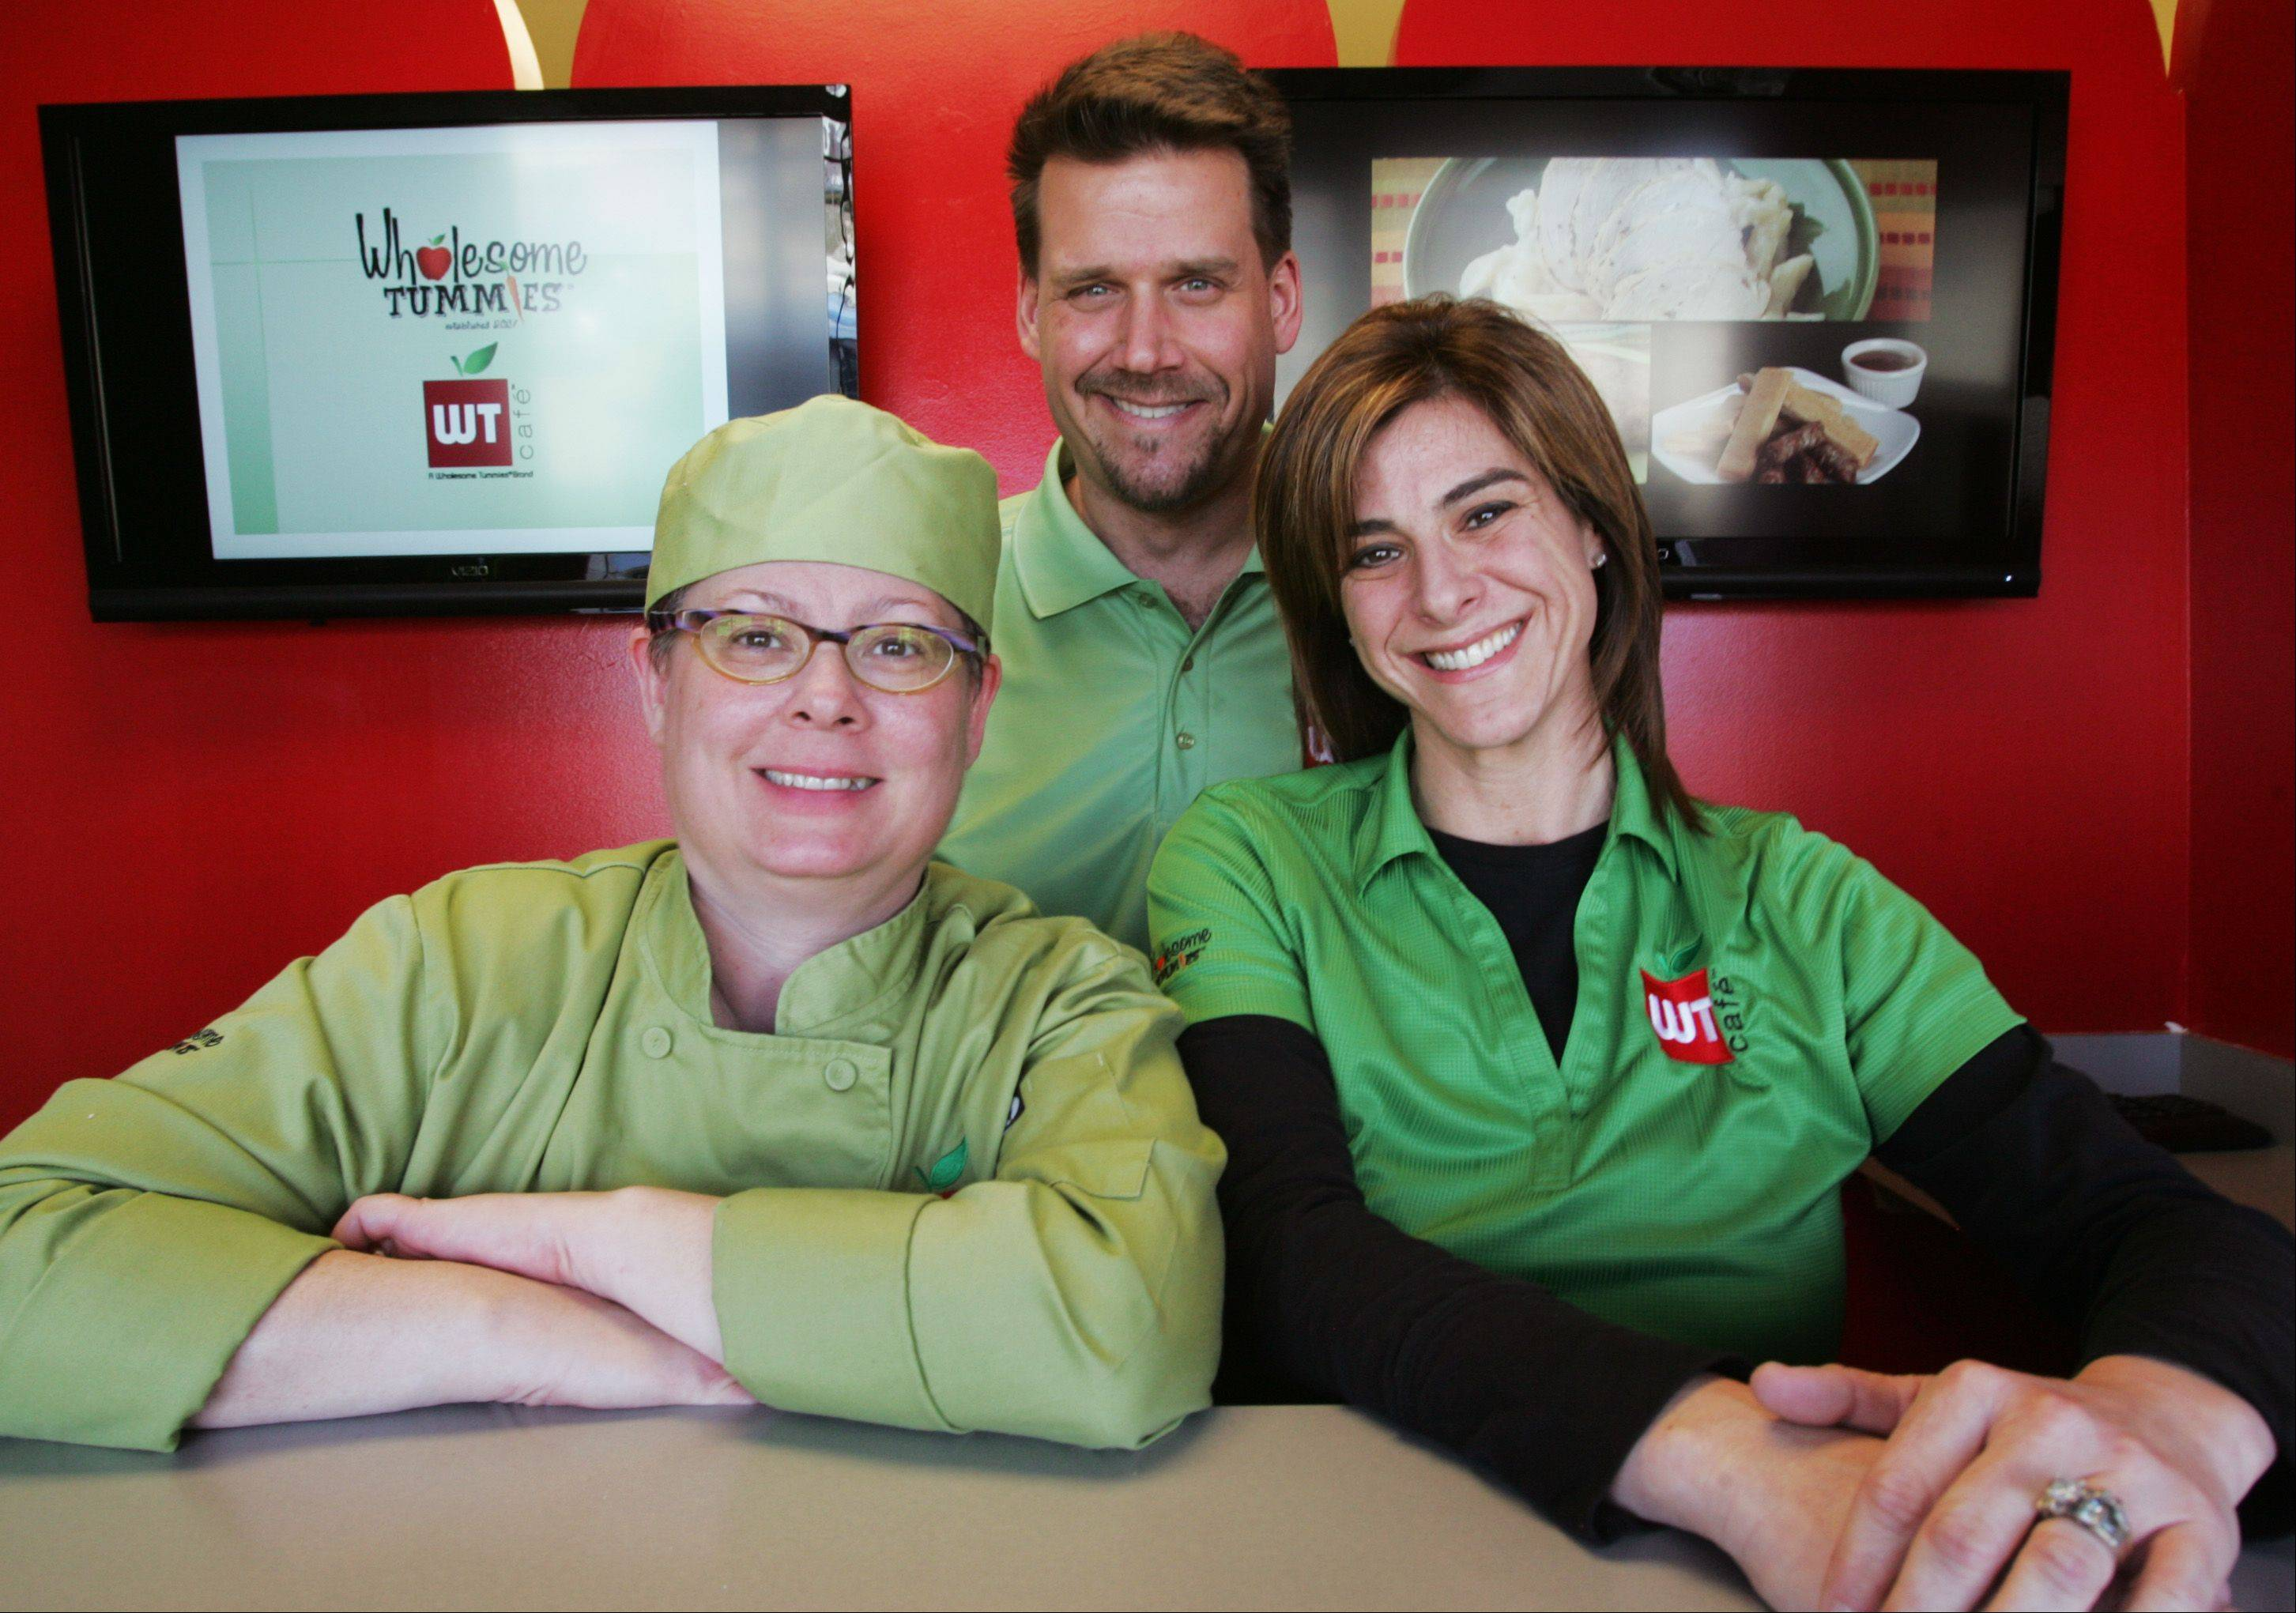 Jennifer Bychowsky, far right, and her husband Mike, started a franchise of Wholesome Tummies in January. The company specializes in kid-friendly healthy meals. Cathy Saso, left, is their chef.